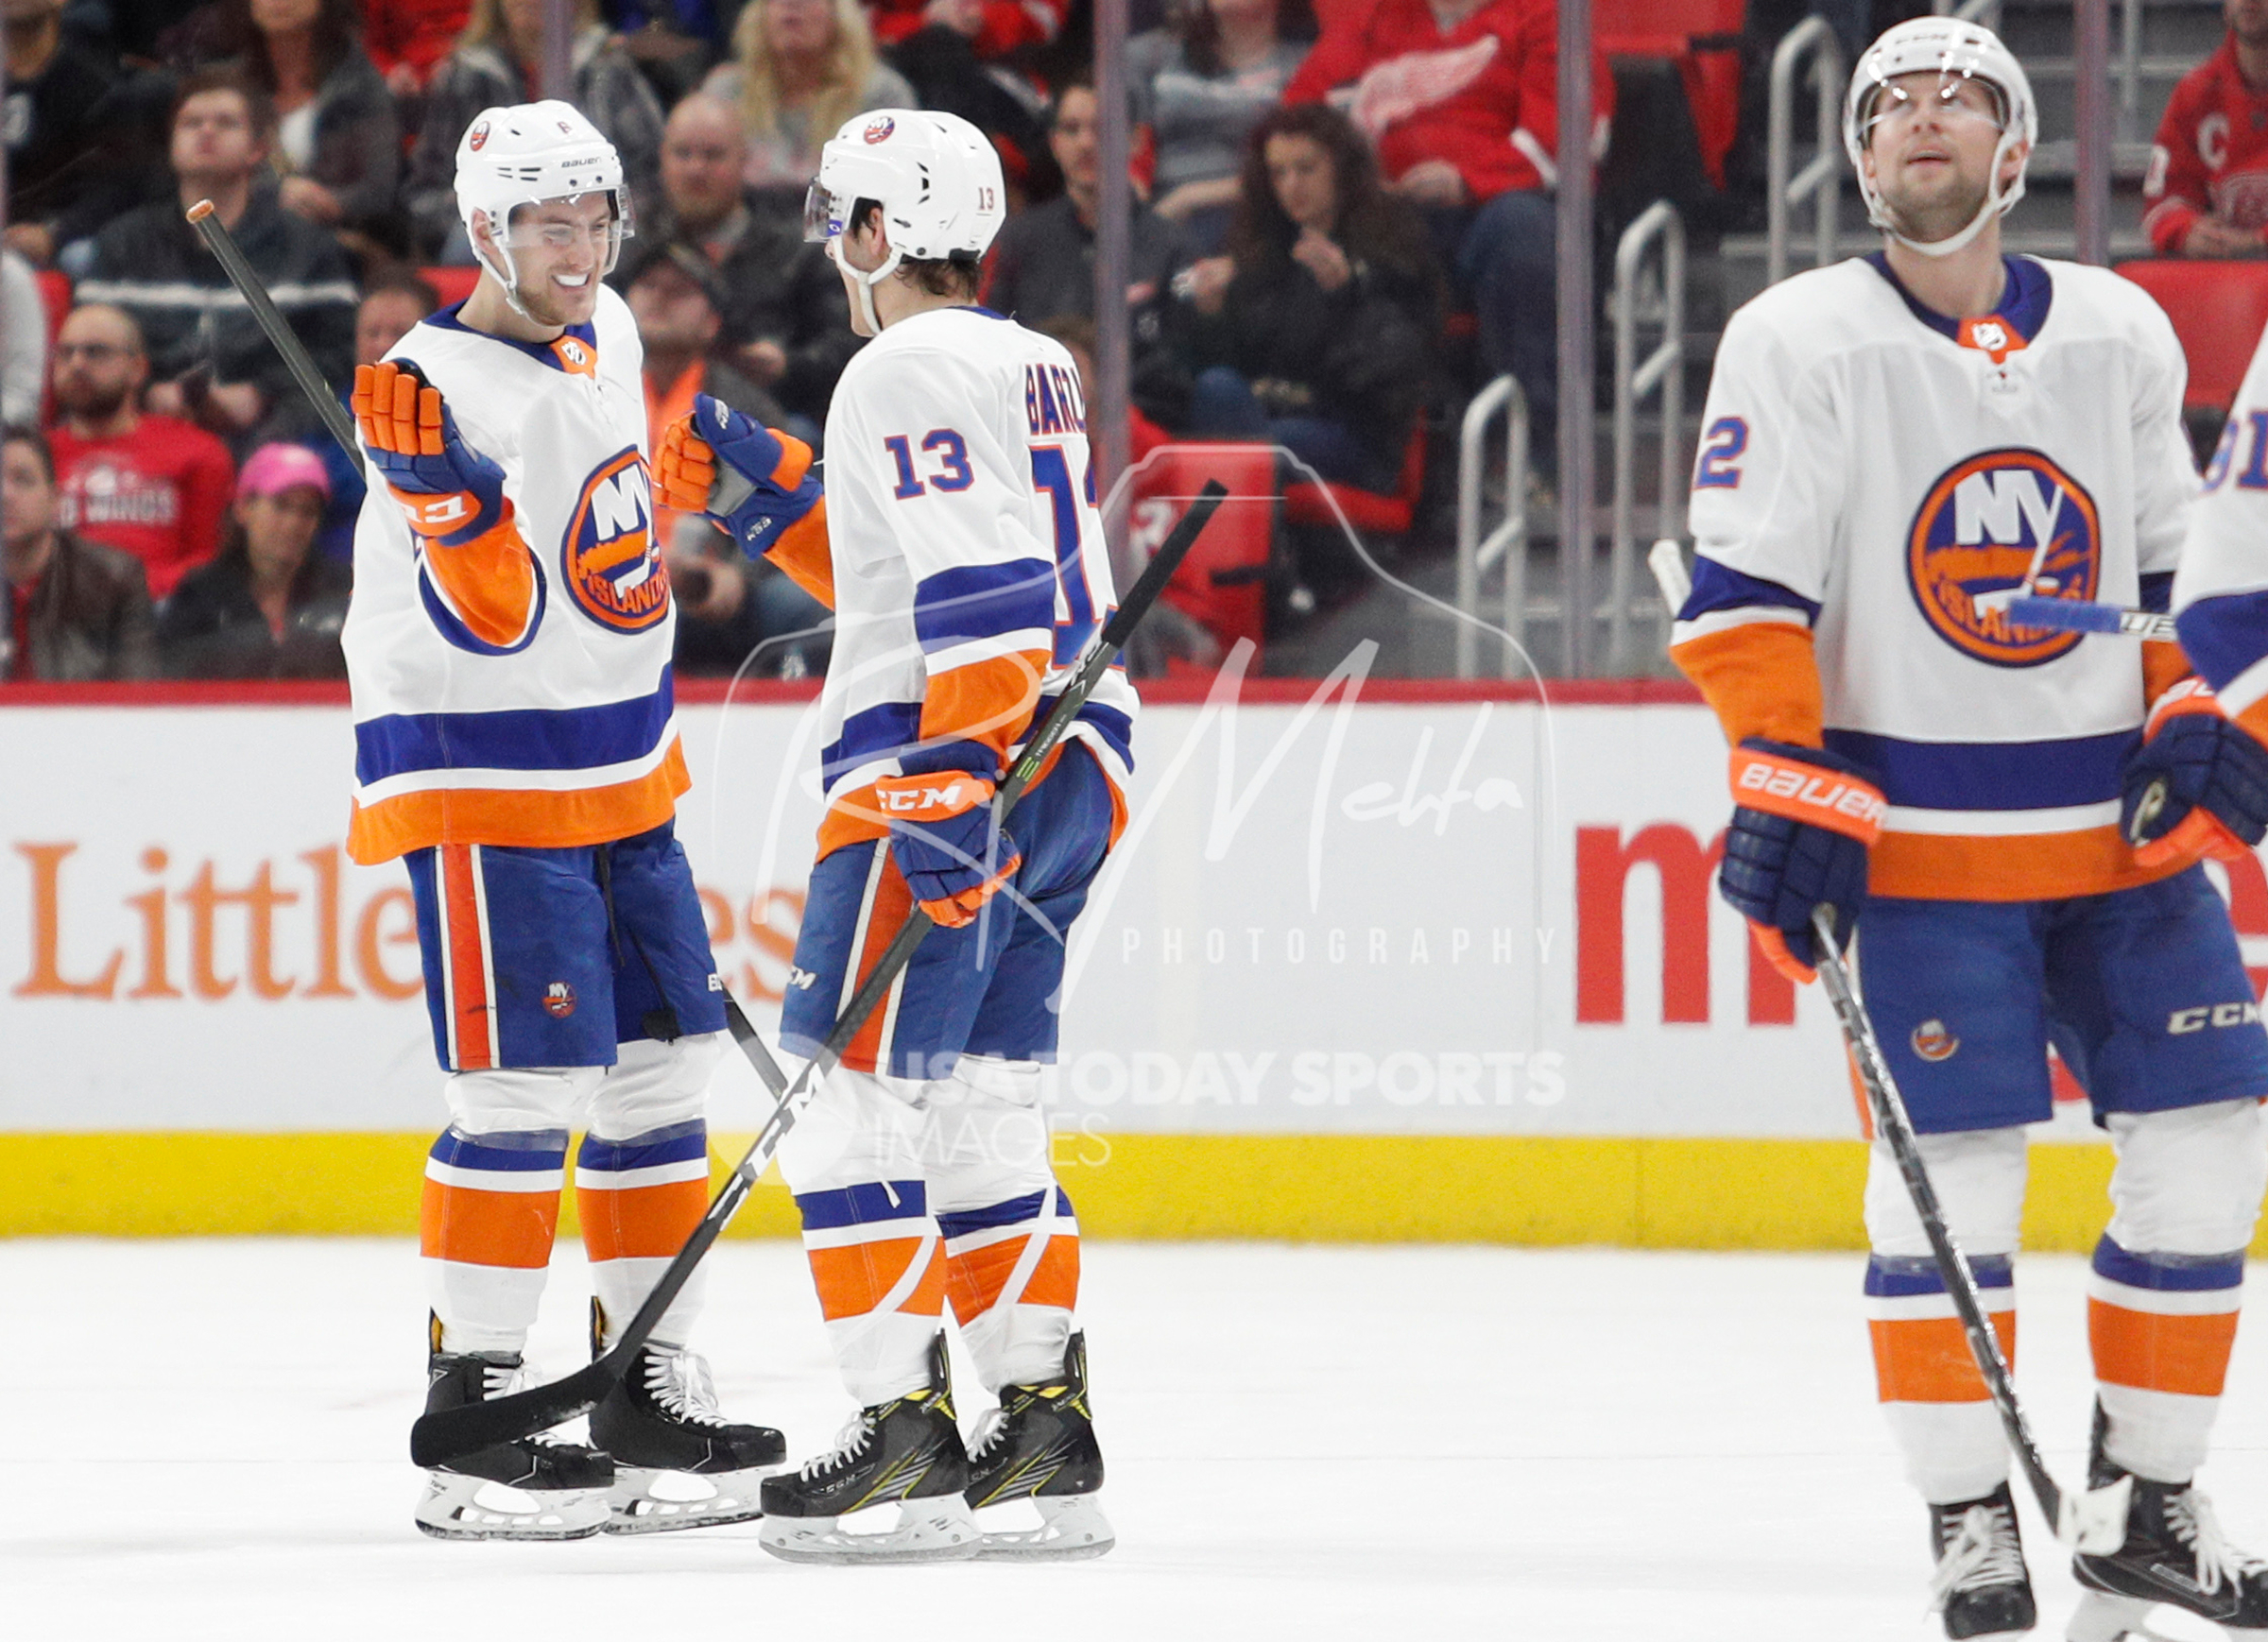 Apr 7, 2018; Detroit, MI, USA; New York Islanders defenseman Ryan Pulock (6) celebrates with center Mathew Barzal (13) after scoring a goal during the third period against the Detroit Red Wings at Little Caesars Arena. Mandatory Credit: Raj Mehta-USA TODAY Sports